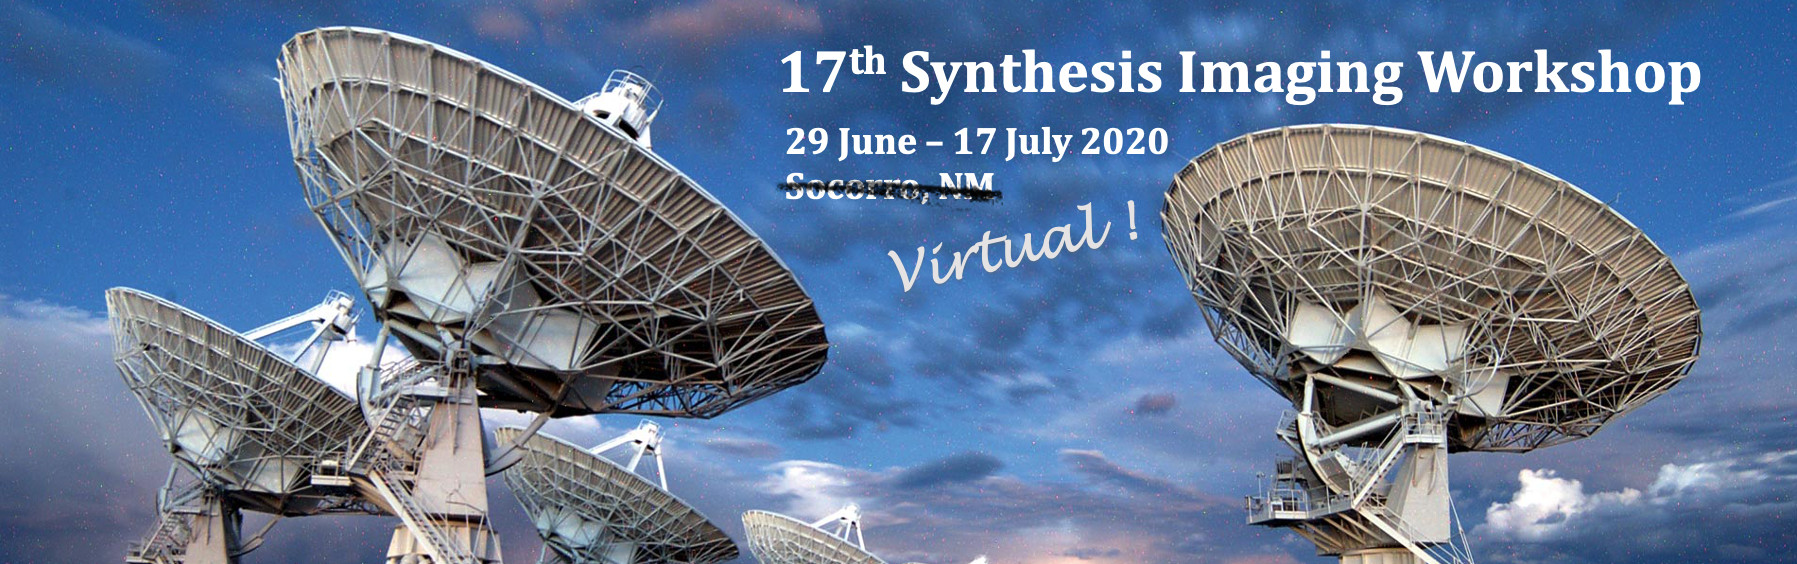 Virtual 17th Synthesis Imaging Workshop